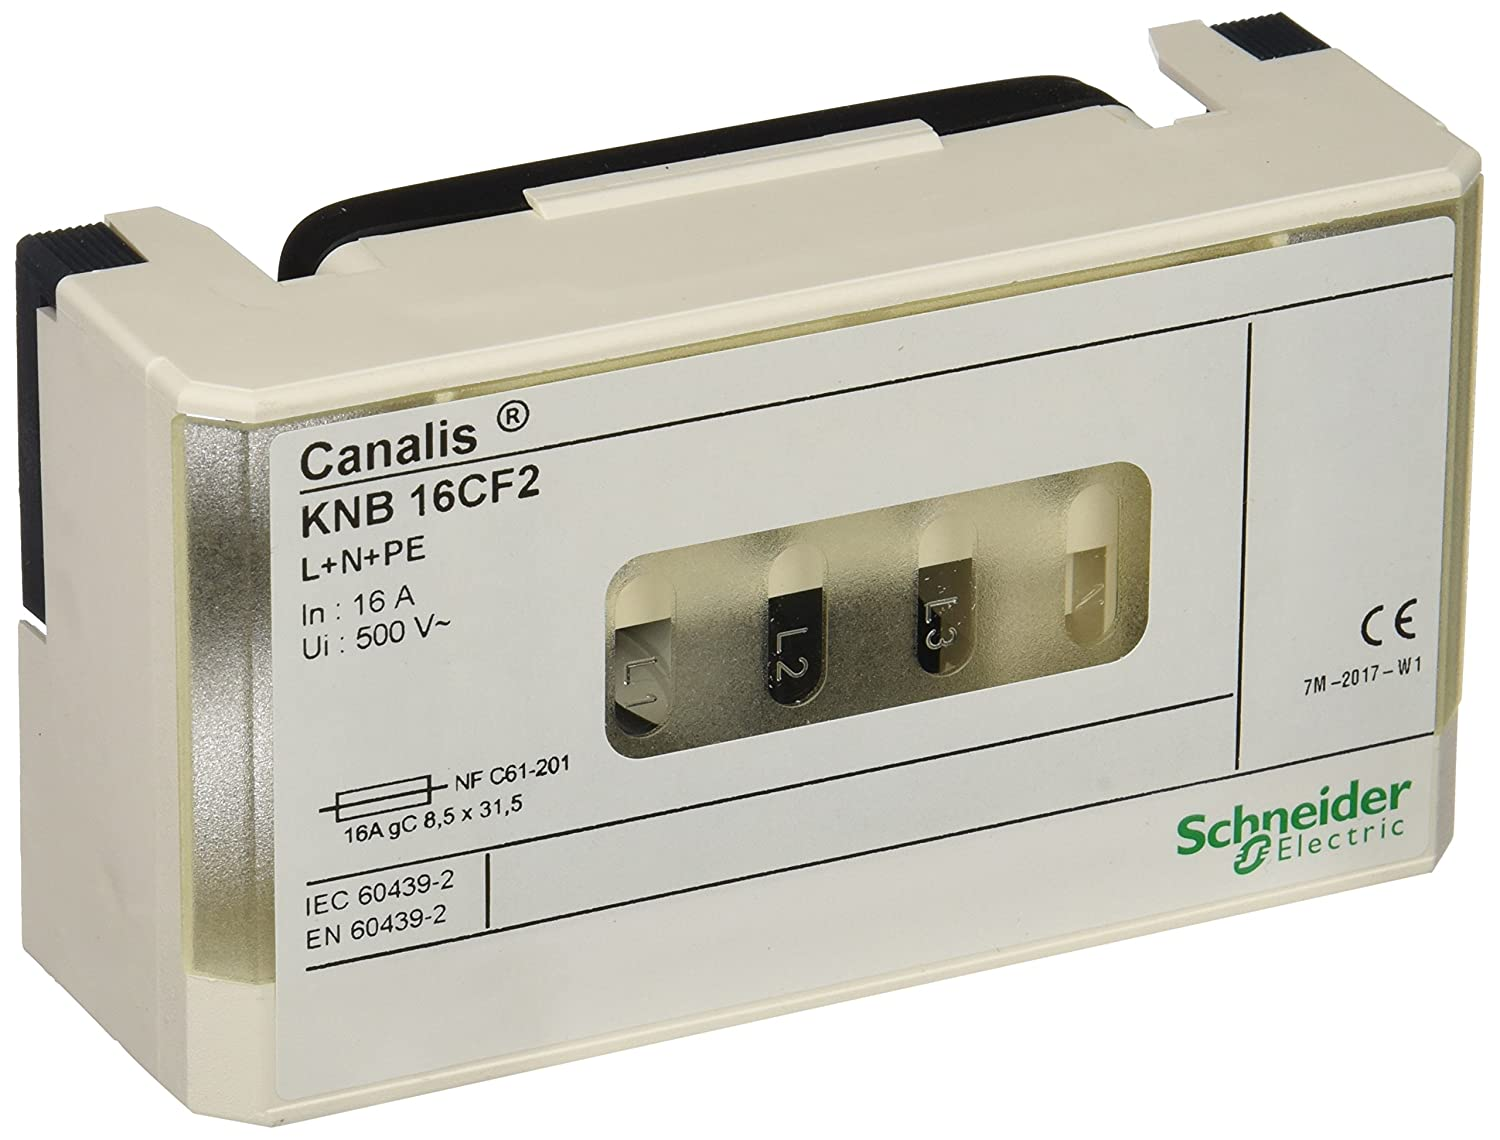 Schneider electric knb16cf2  conducteur/canal KN Boî te de dé rivation pour fusible NF 8.5  x 31.5  mm, l + N + PE, 16  A, 230  –   500  V, 50/60  Hz, Blanc 16 A 230 - 500 V 50/60 Hz